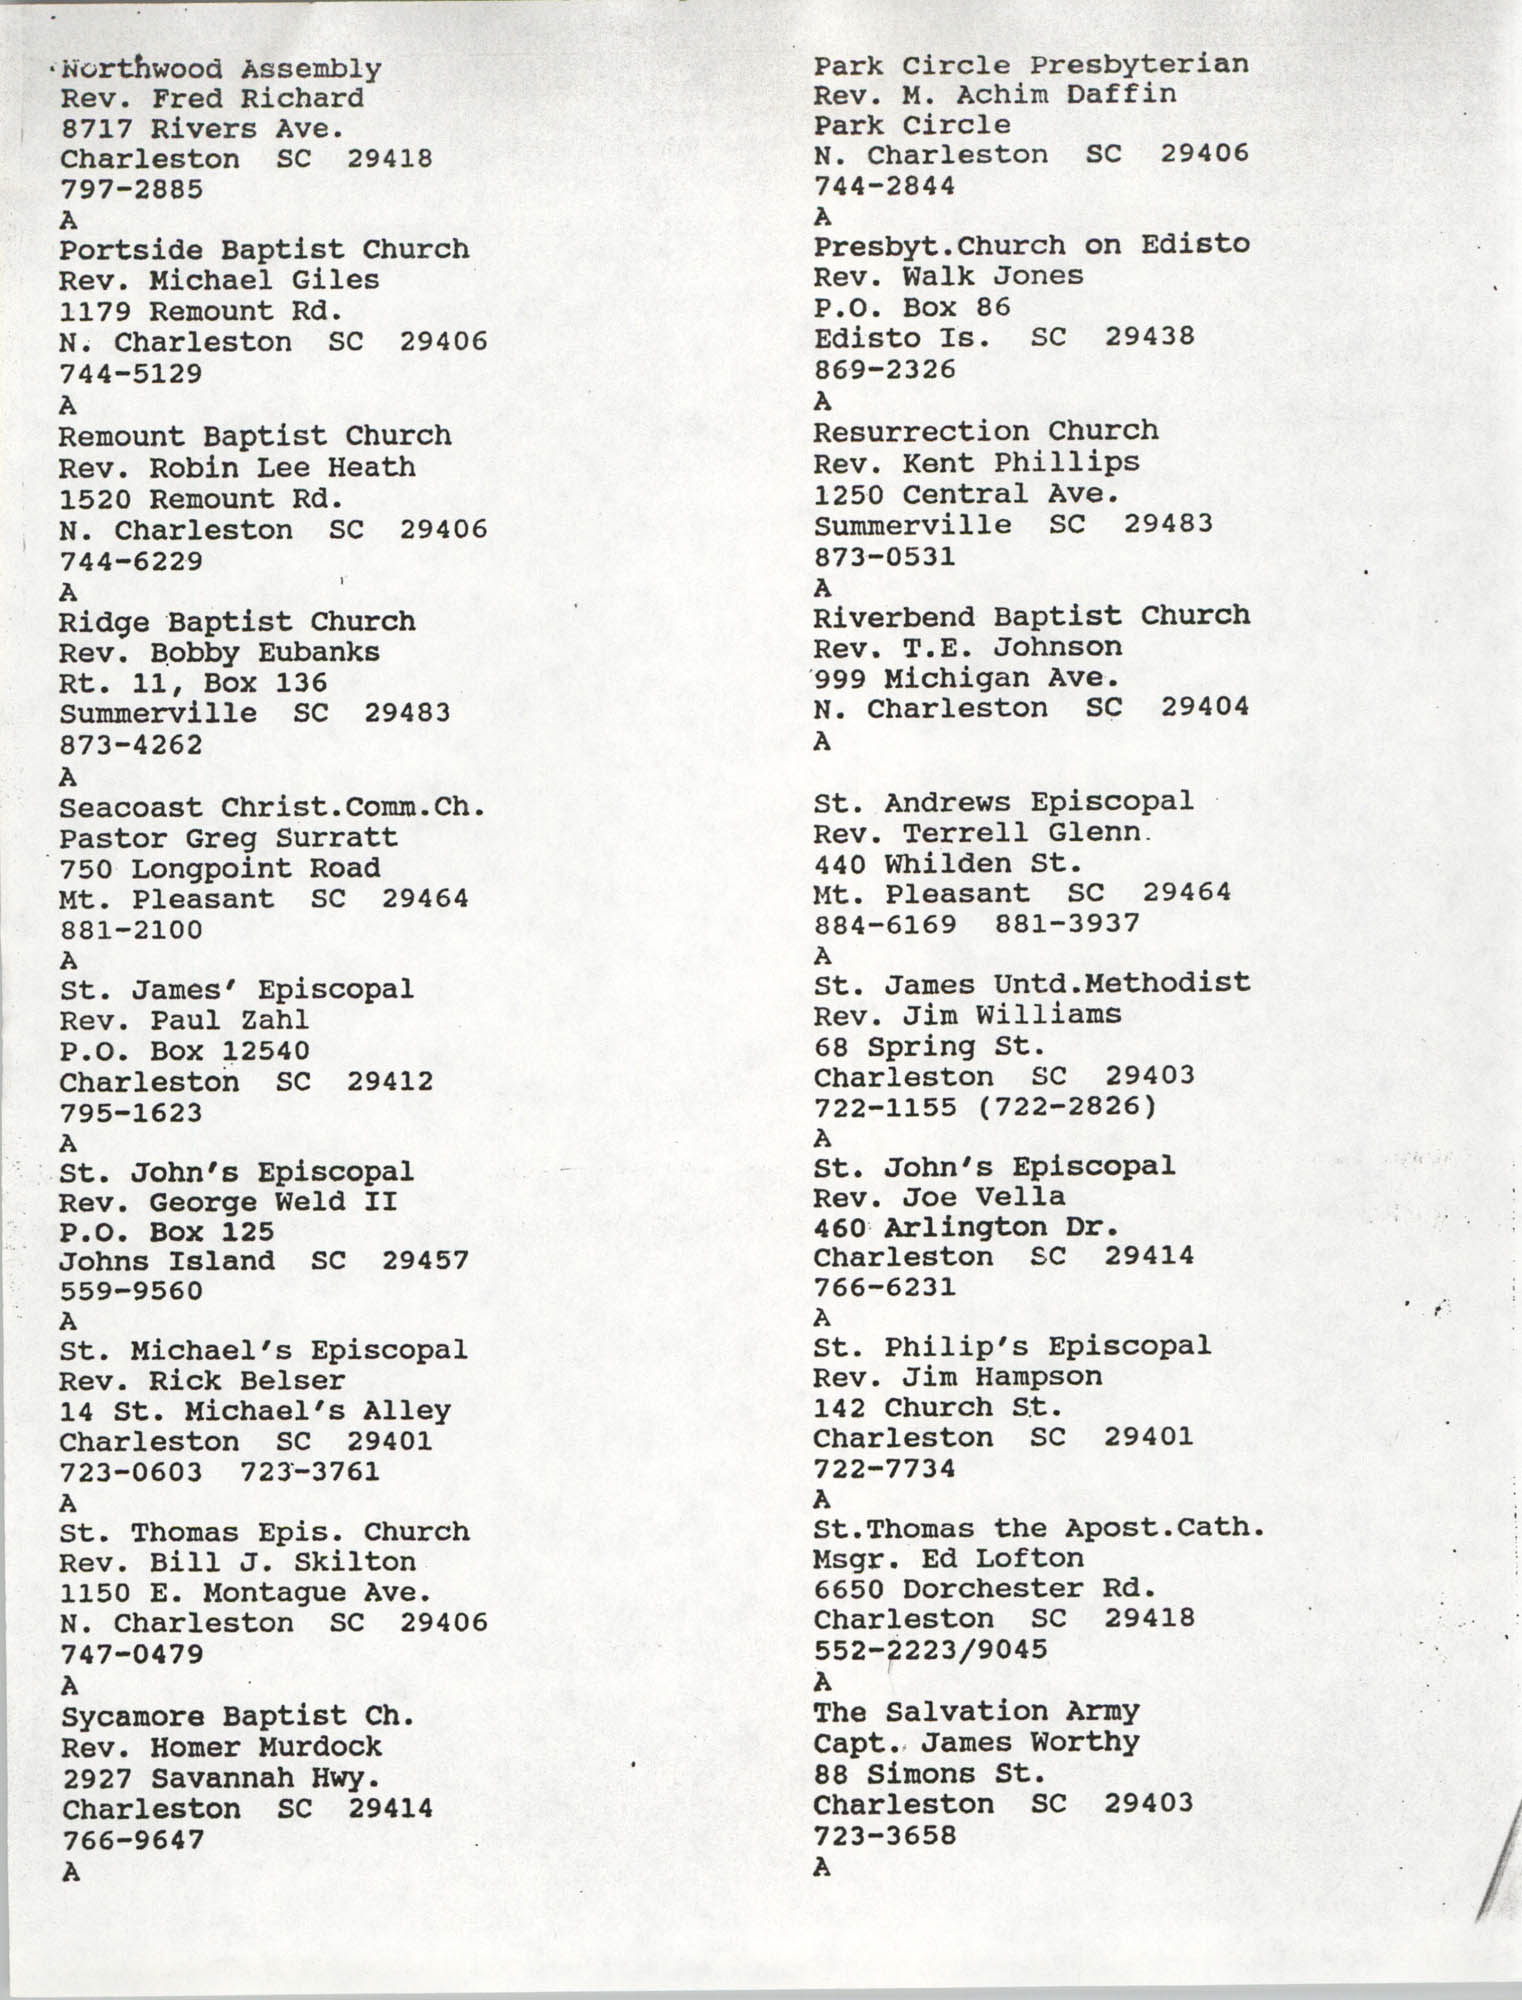 Church Contact List, Charleston Chapter of the NAACP, Page 3